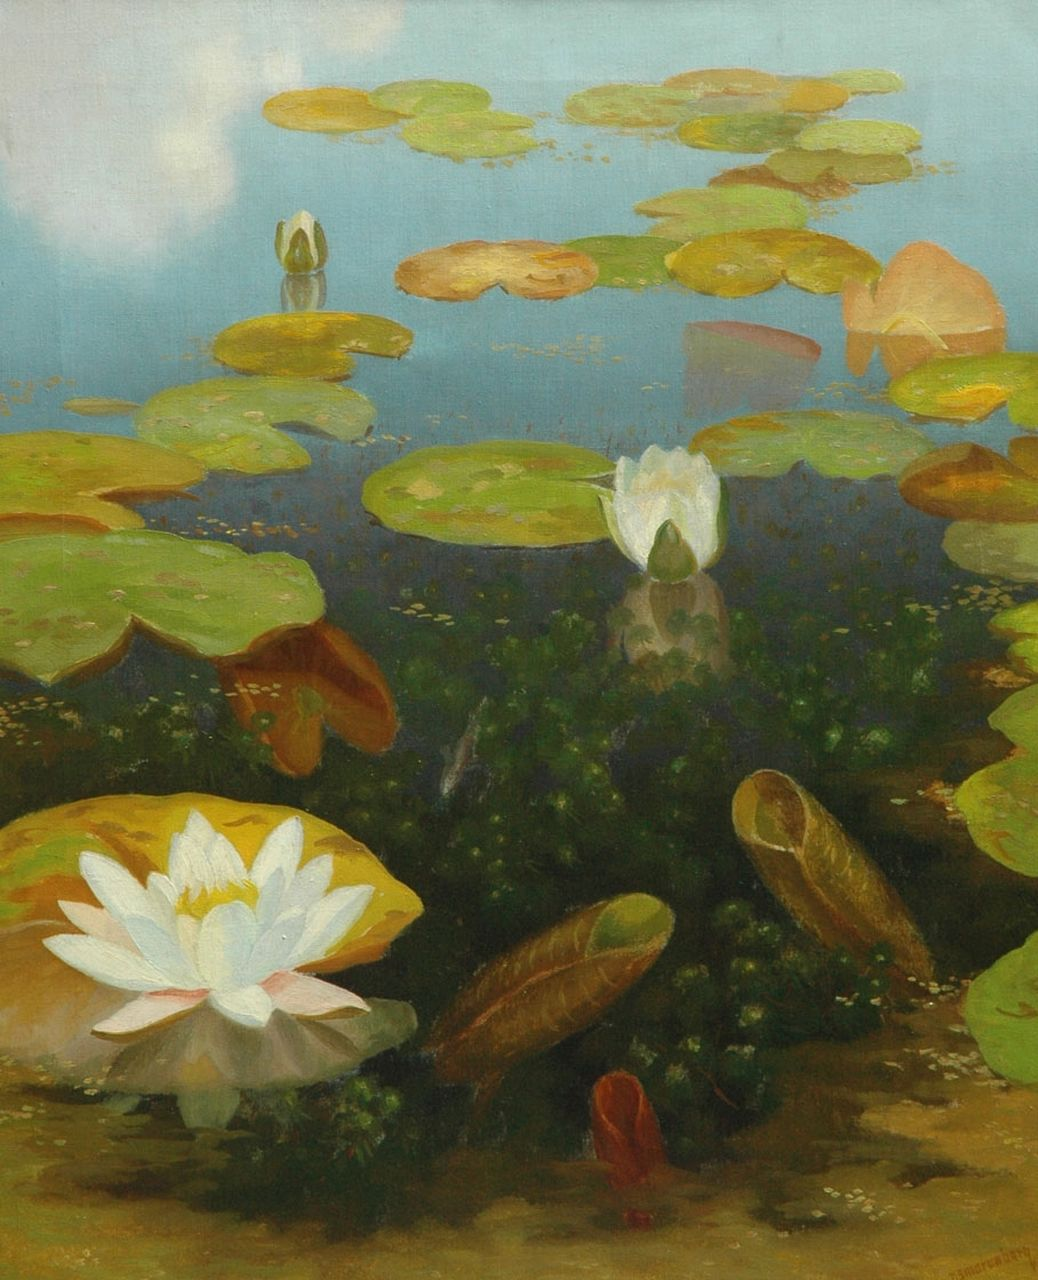 Smorenberg D.  | Dirk Smorenberg, Water lilies, oil on canvas 59.8 x 49.8 cm, signed l.r.